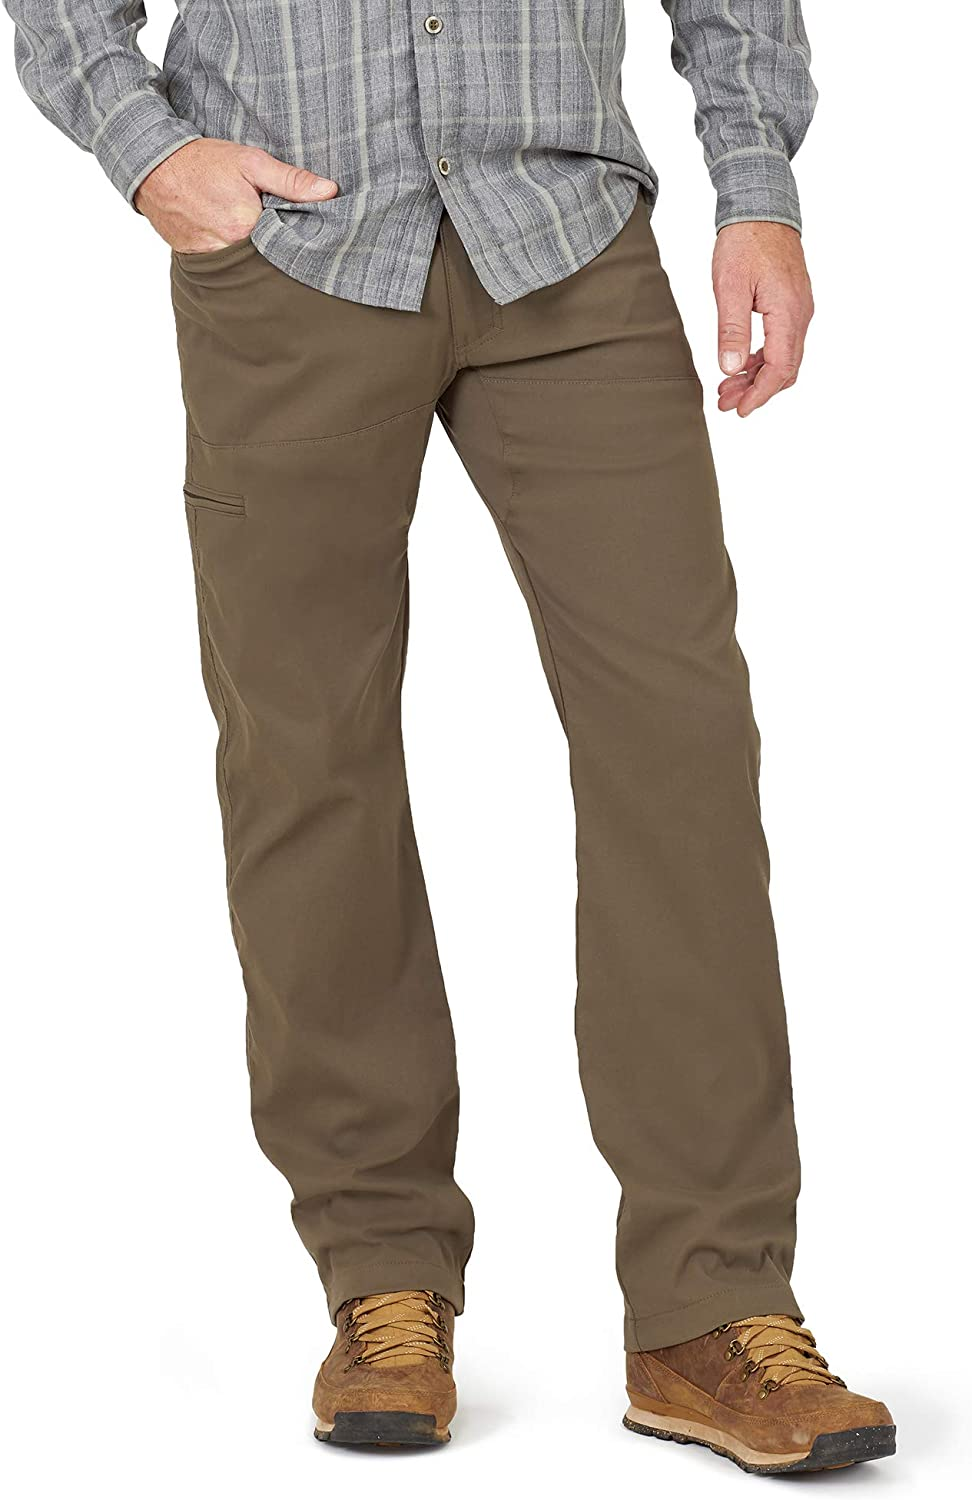 ATG by Limited time cheap sale Japan Maker New Wrangler Men's Utility Synthetic Pant